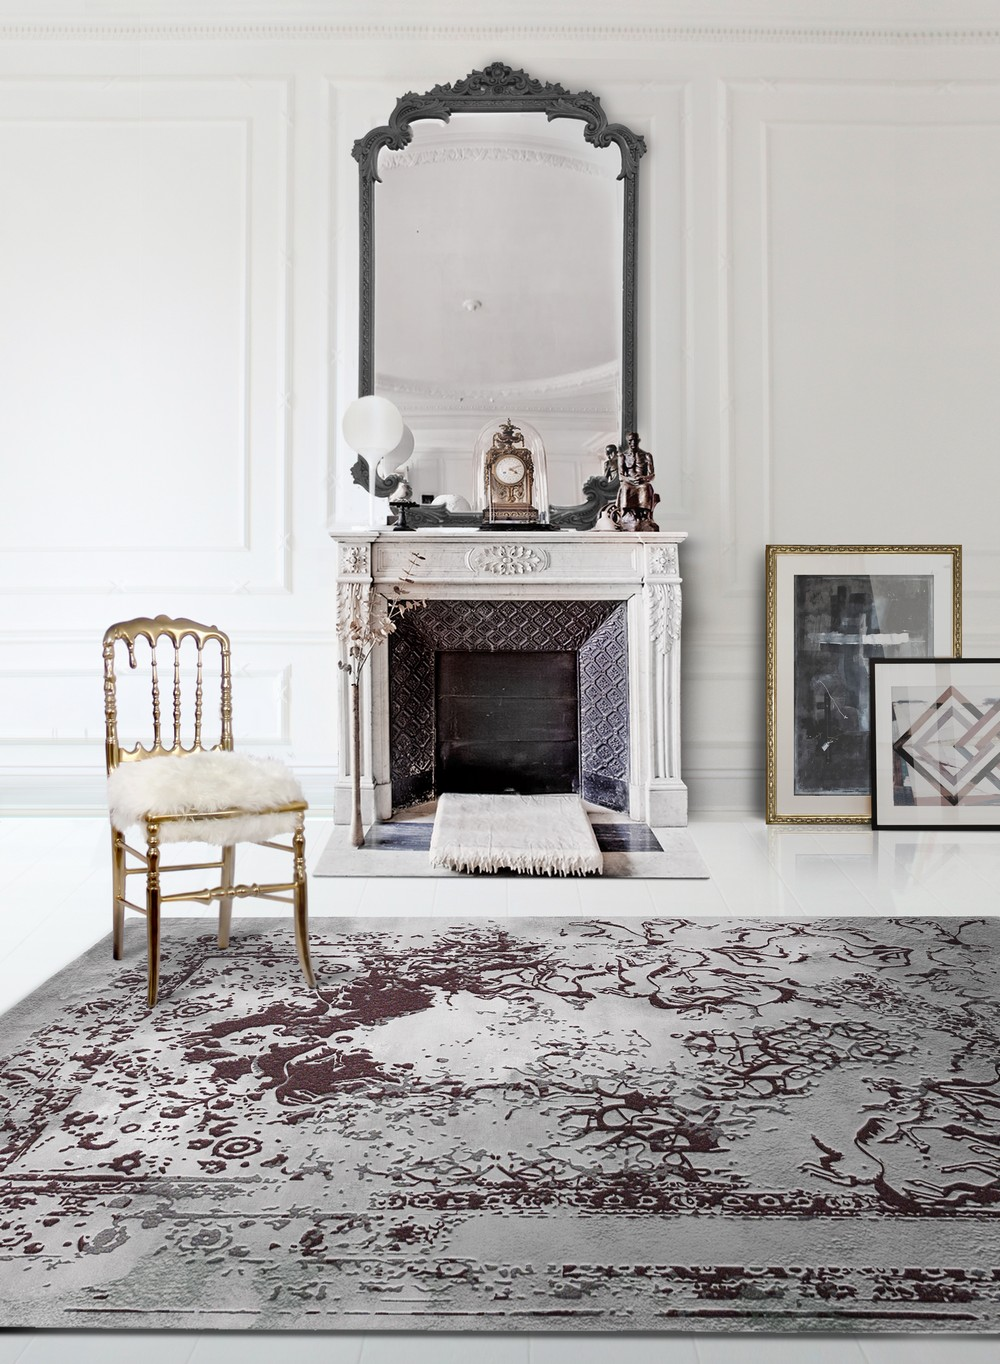 House Beautiful Shows How Victorian Design Style Is Coming Back! victorian design style House Beautiful Shows How Victorian Design Style Is Coming Back! House Beautiful Shows How Victorian Design Style Is Coming Back 3